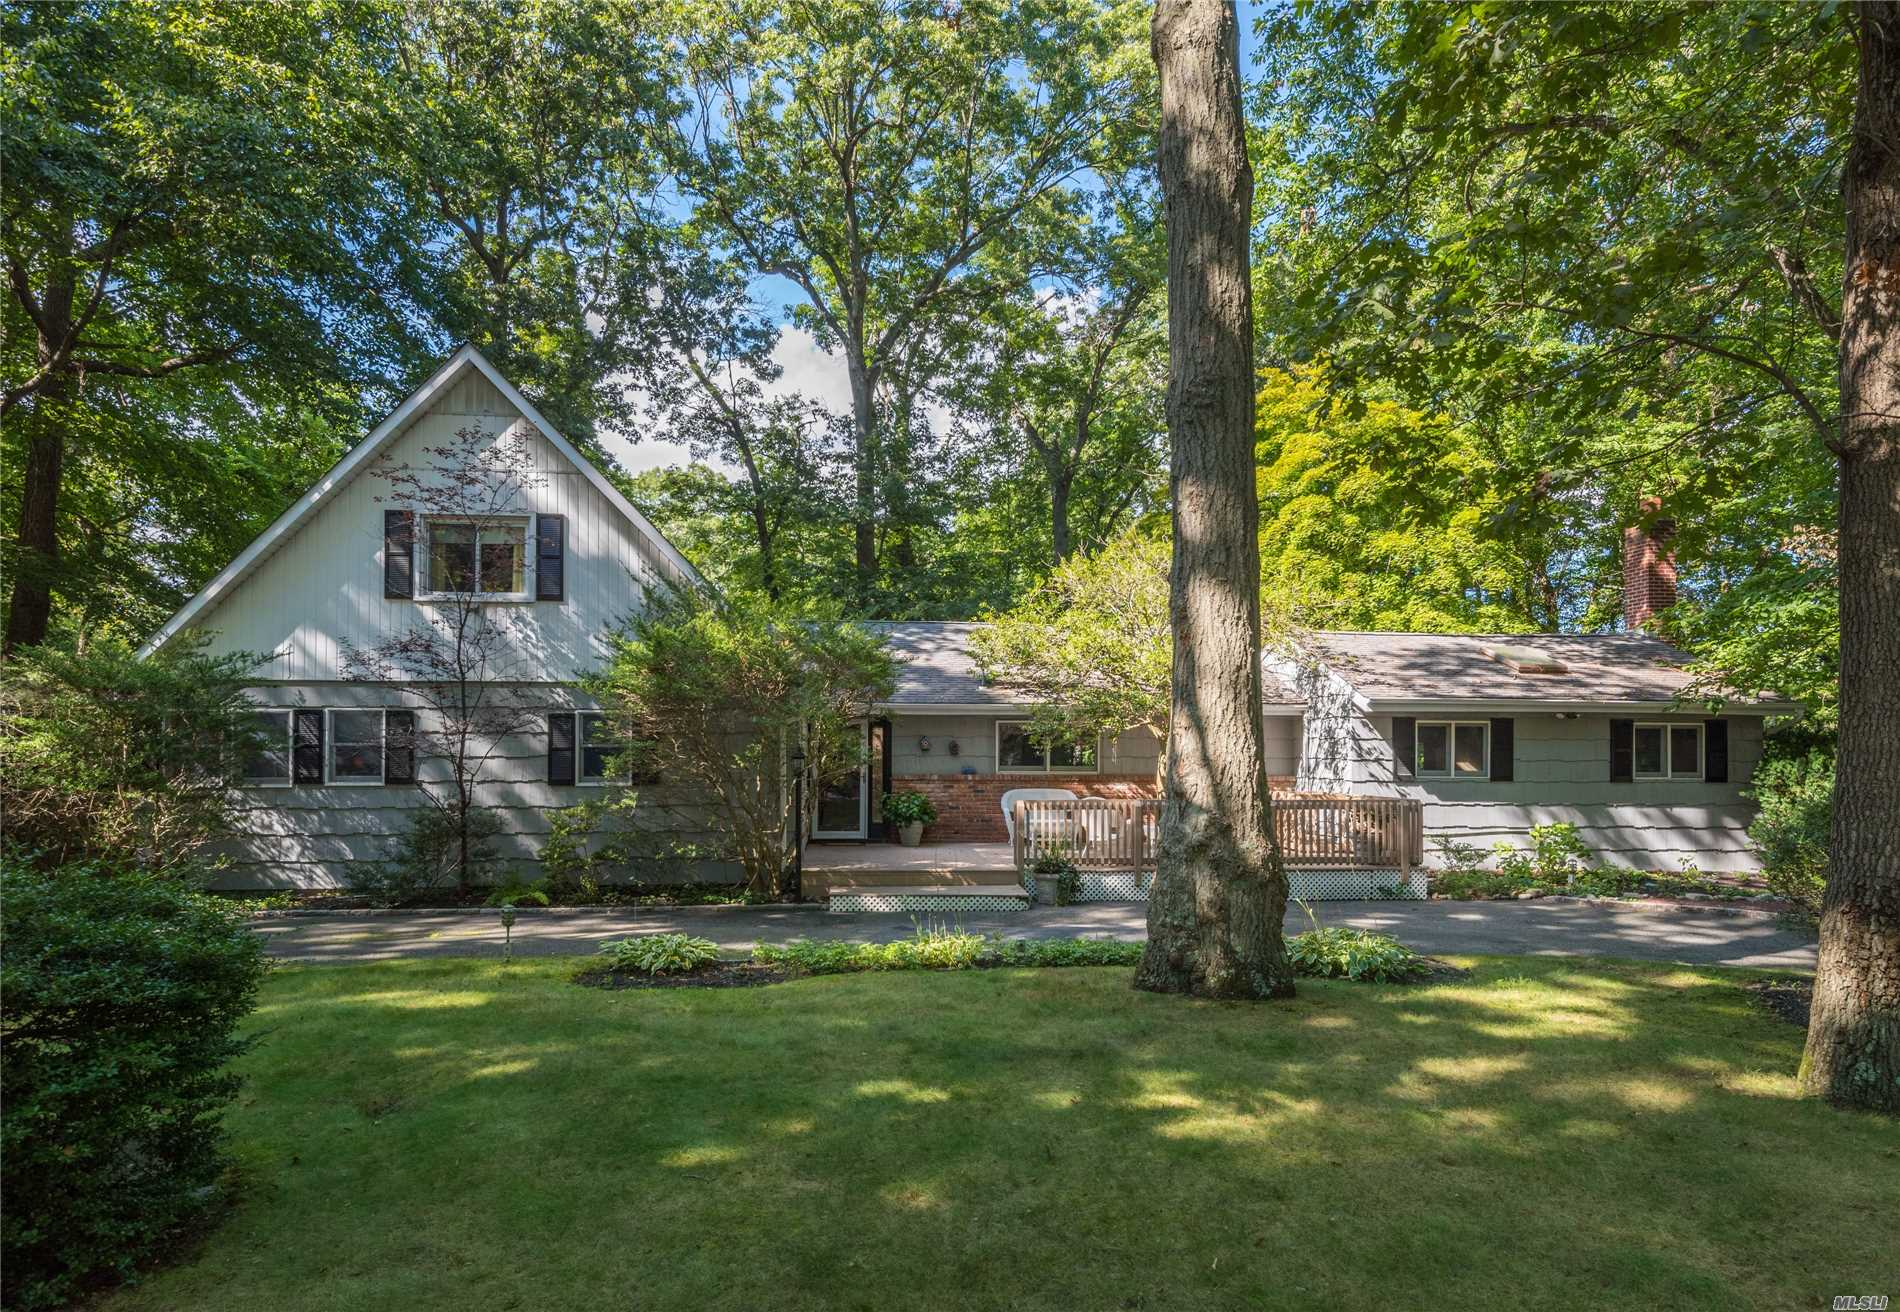 Beach & Boater Paradise! Fabulous 4-Bd, 3-Ba Farm Ranch On Flat 1.01 Acres In Vanderbilt Peninsula. Large Eik W/Oak Cabinets & Flrs. Spacious Great Room W/Fireplace, Vaulted Ceiling & Skylights. 1st Flr Master Bdrm W/Ensuite Bth & 2 Wic. Front/Rear Decks. Wood Flrs, Cac, Some Andersons, Upd Boiler. 1st Flr Laundry. Finished Bsmt. Tax Grievance In Progress - Expect $6434 Reduction. Beach, Mooring & Dock Rights In Plaisance Beach Assn On Npt Hrbr & Town Beach On Centerport Hrbr Just A Block Away!